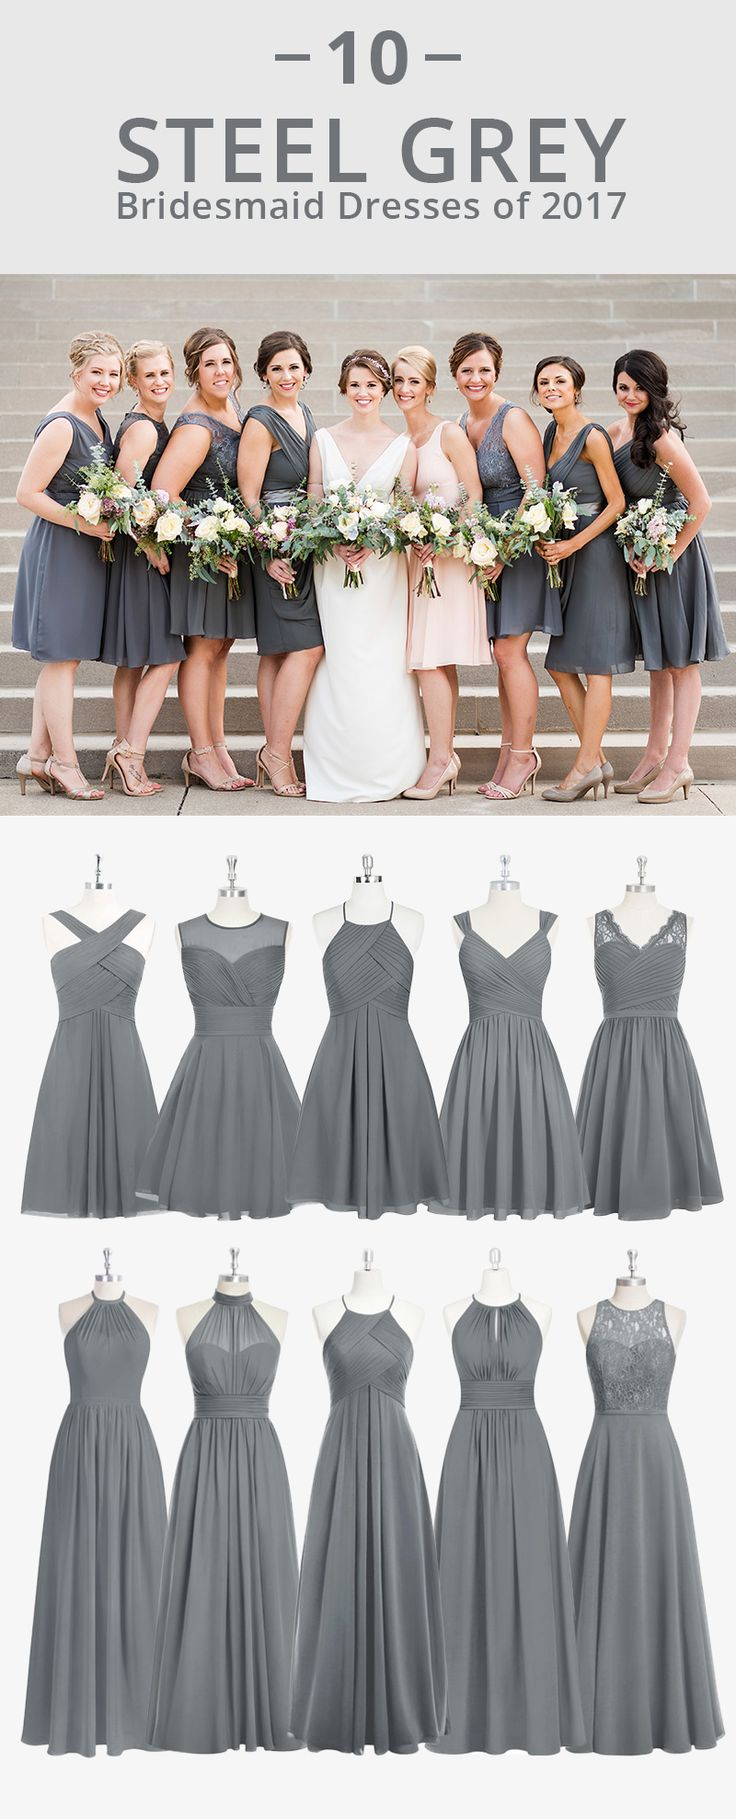 Dress your bridesmaids in steel grey! Available in sizes 0-30 and free custom sizing! Every woman deserves their dream dress, that fits right while still being budget friendly! I Photos by Ashley Fisher Photography